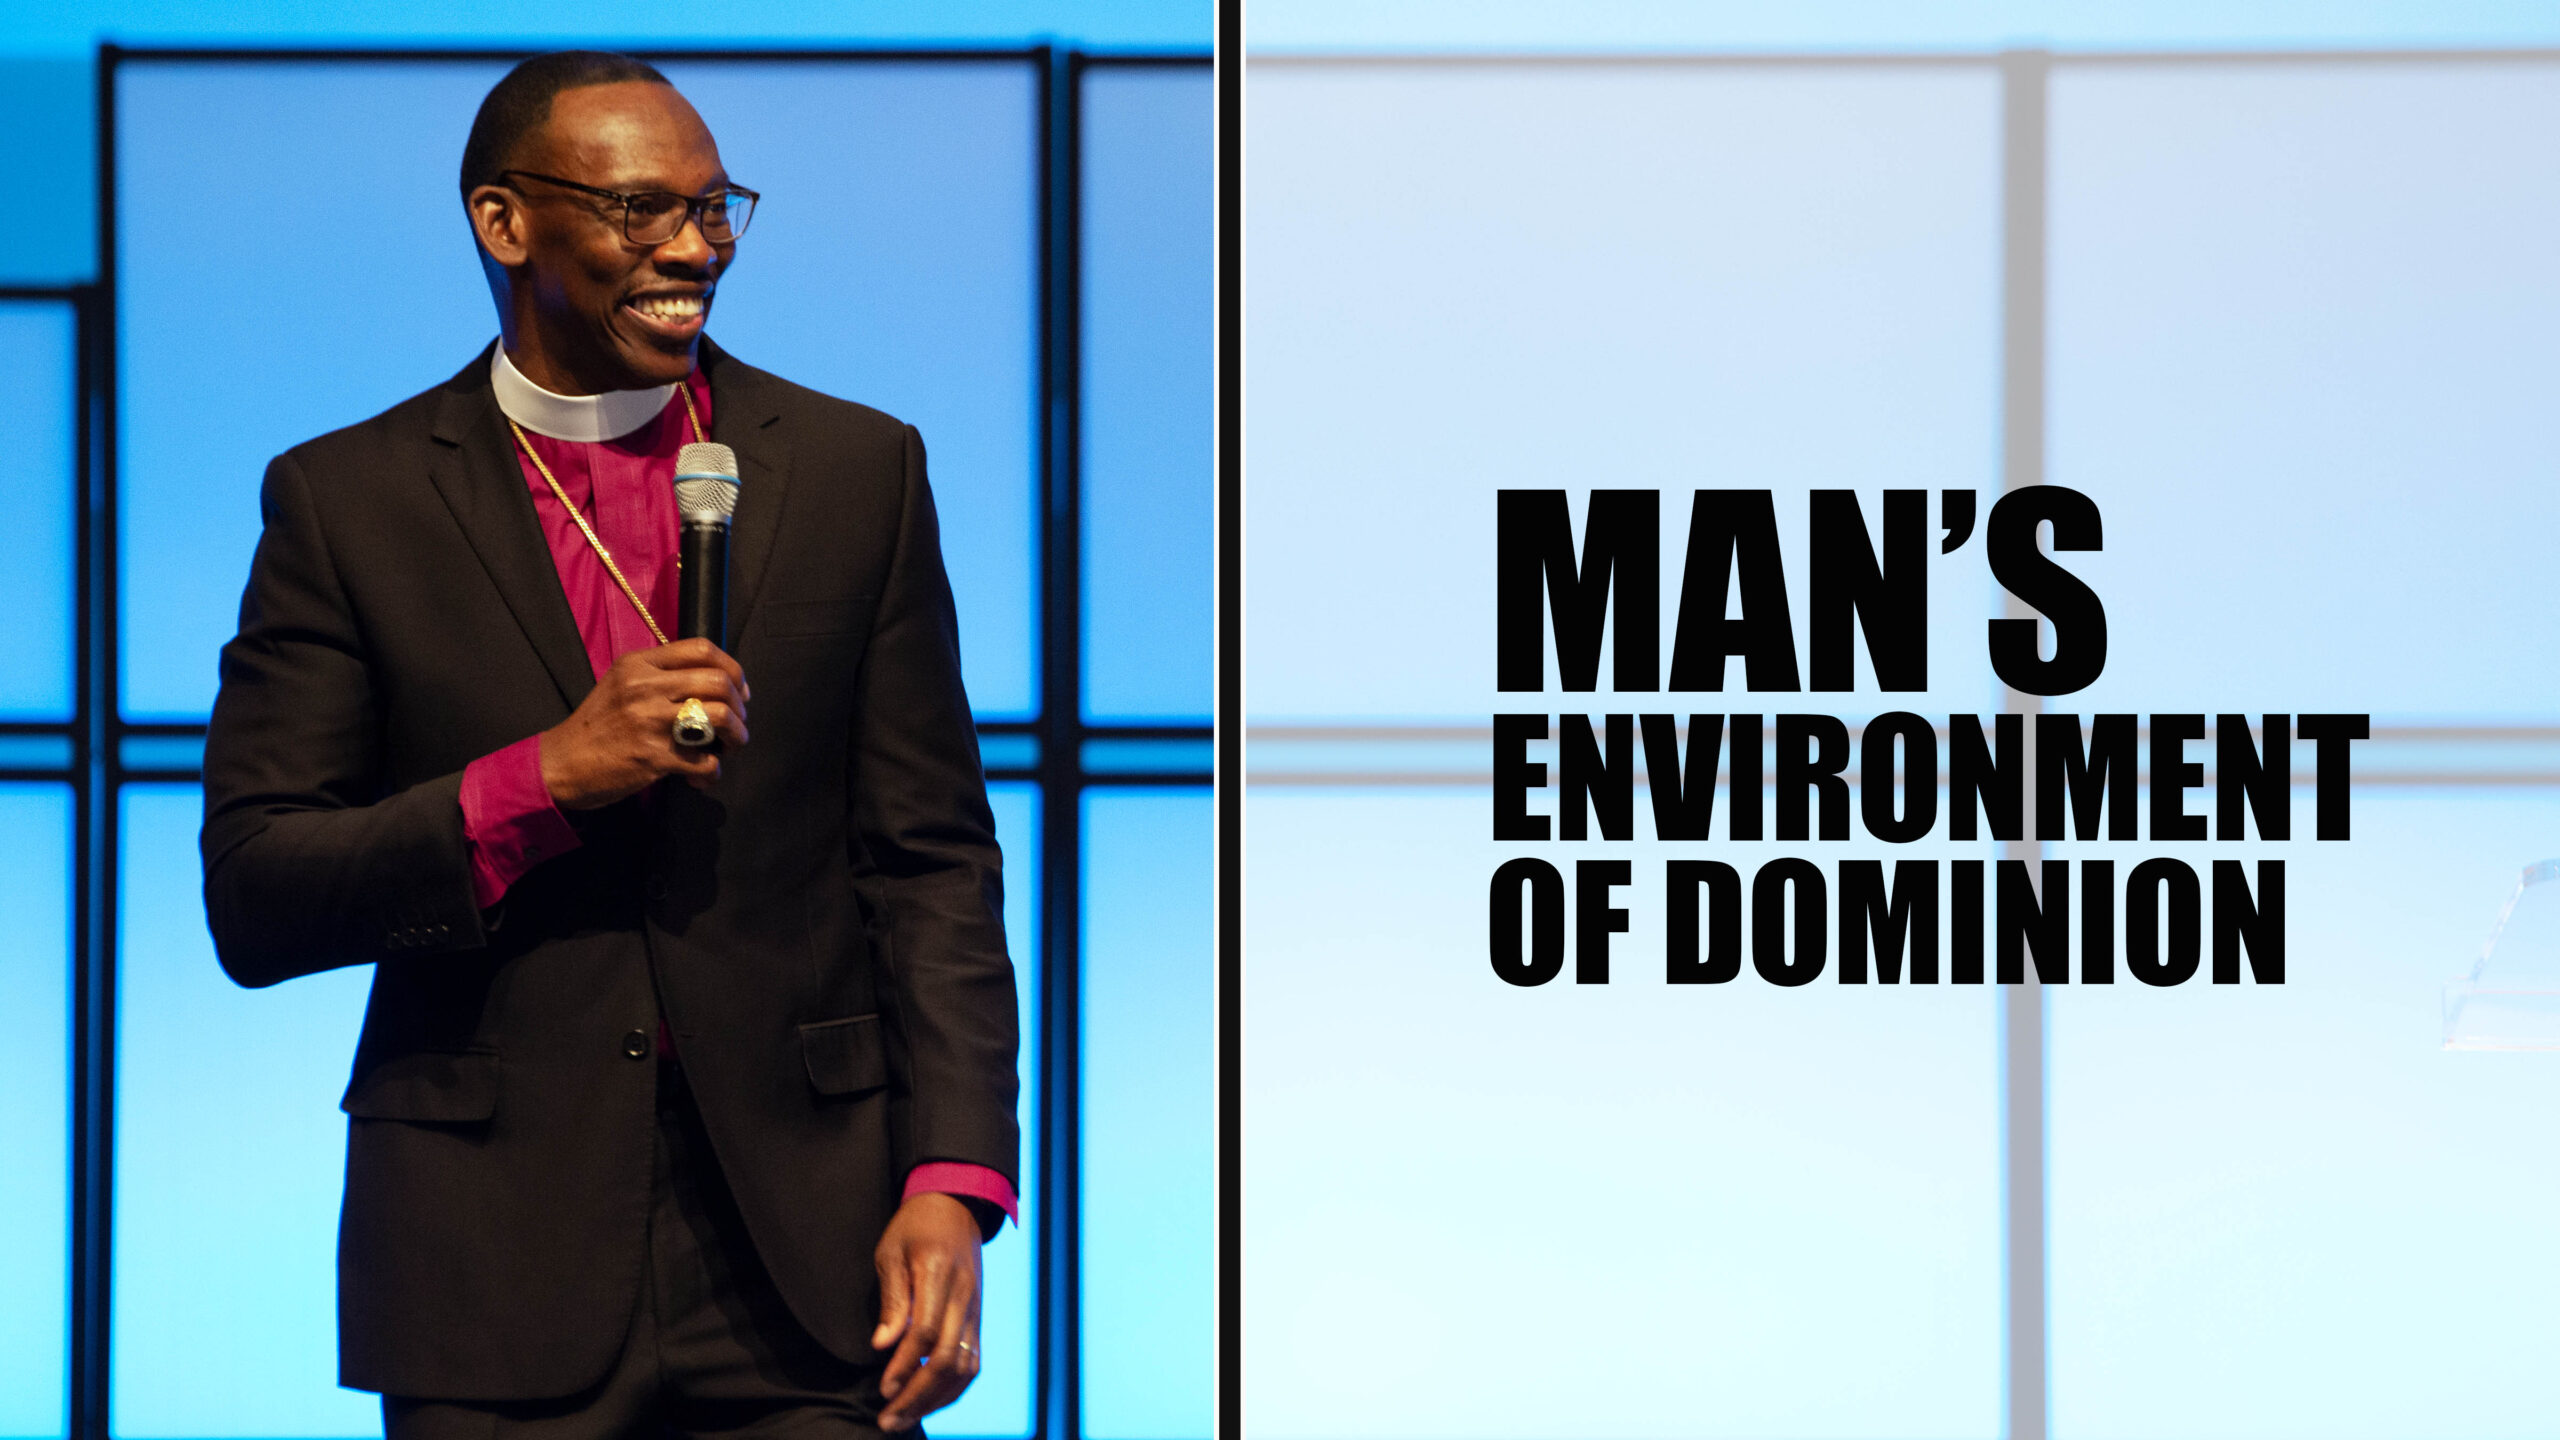 Man's Environment Of Dominion